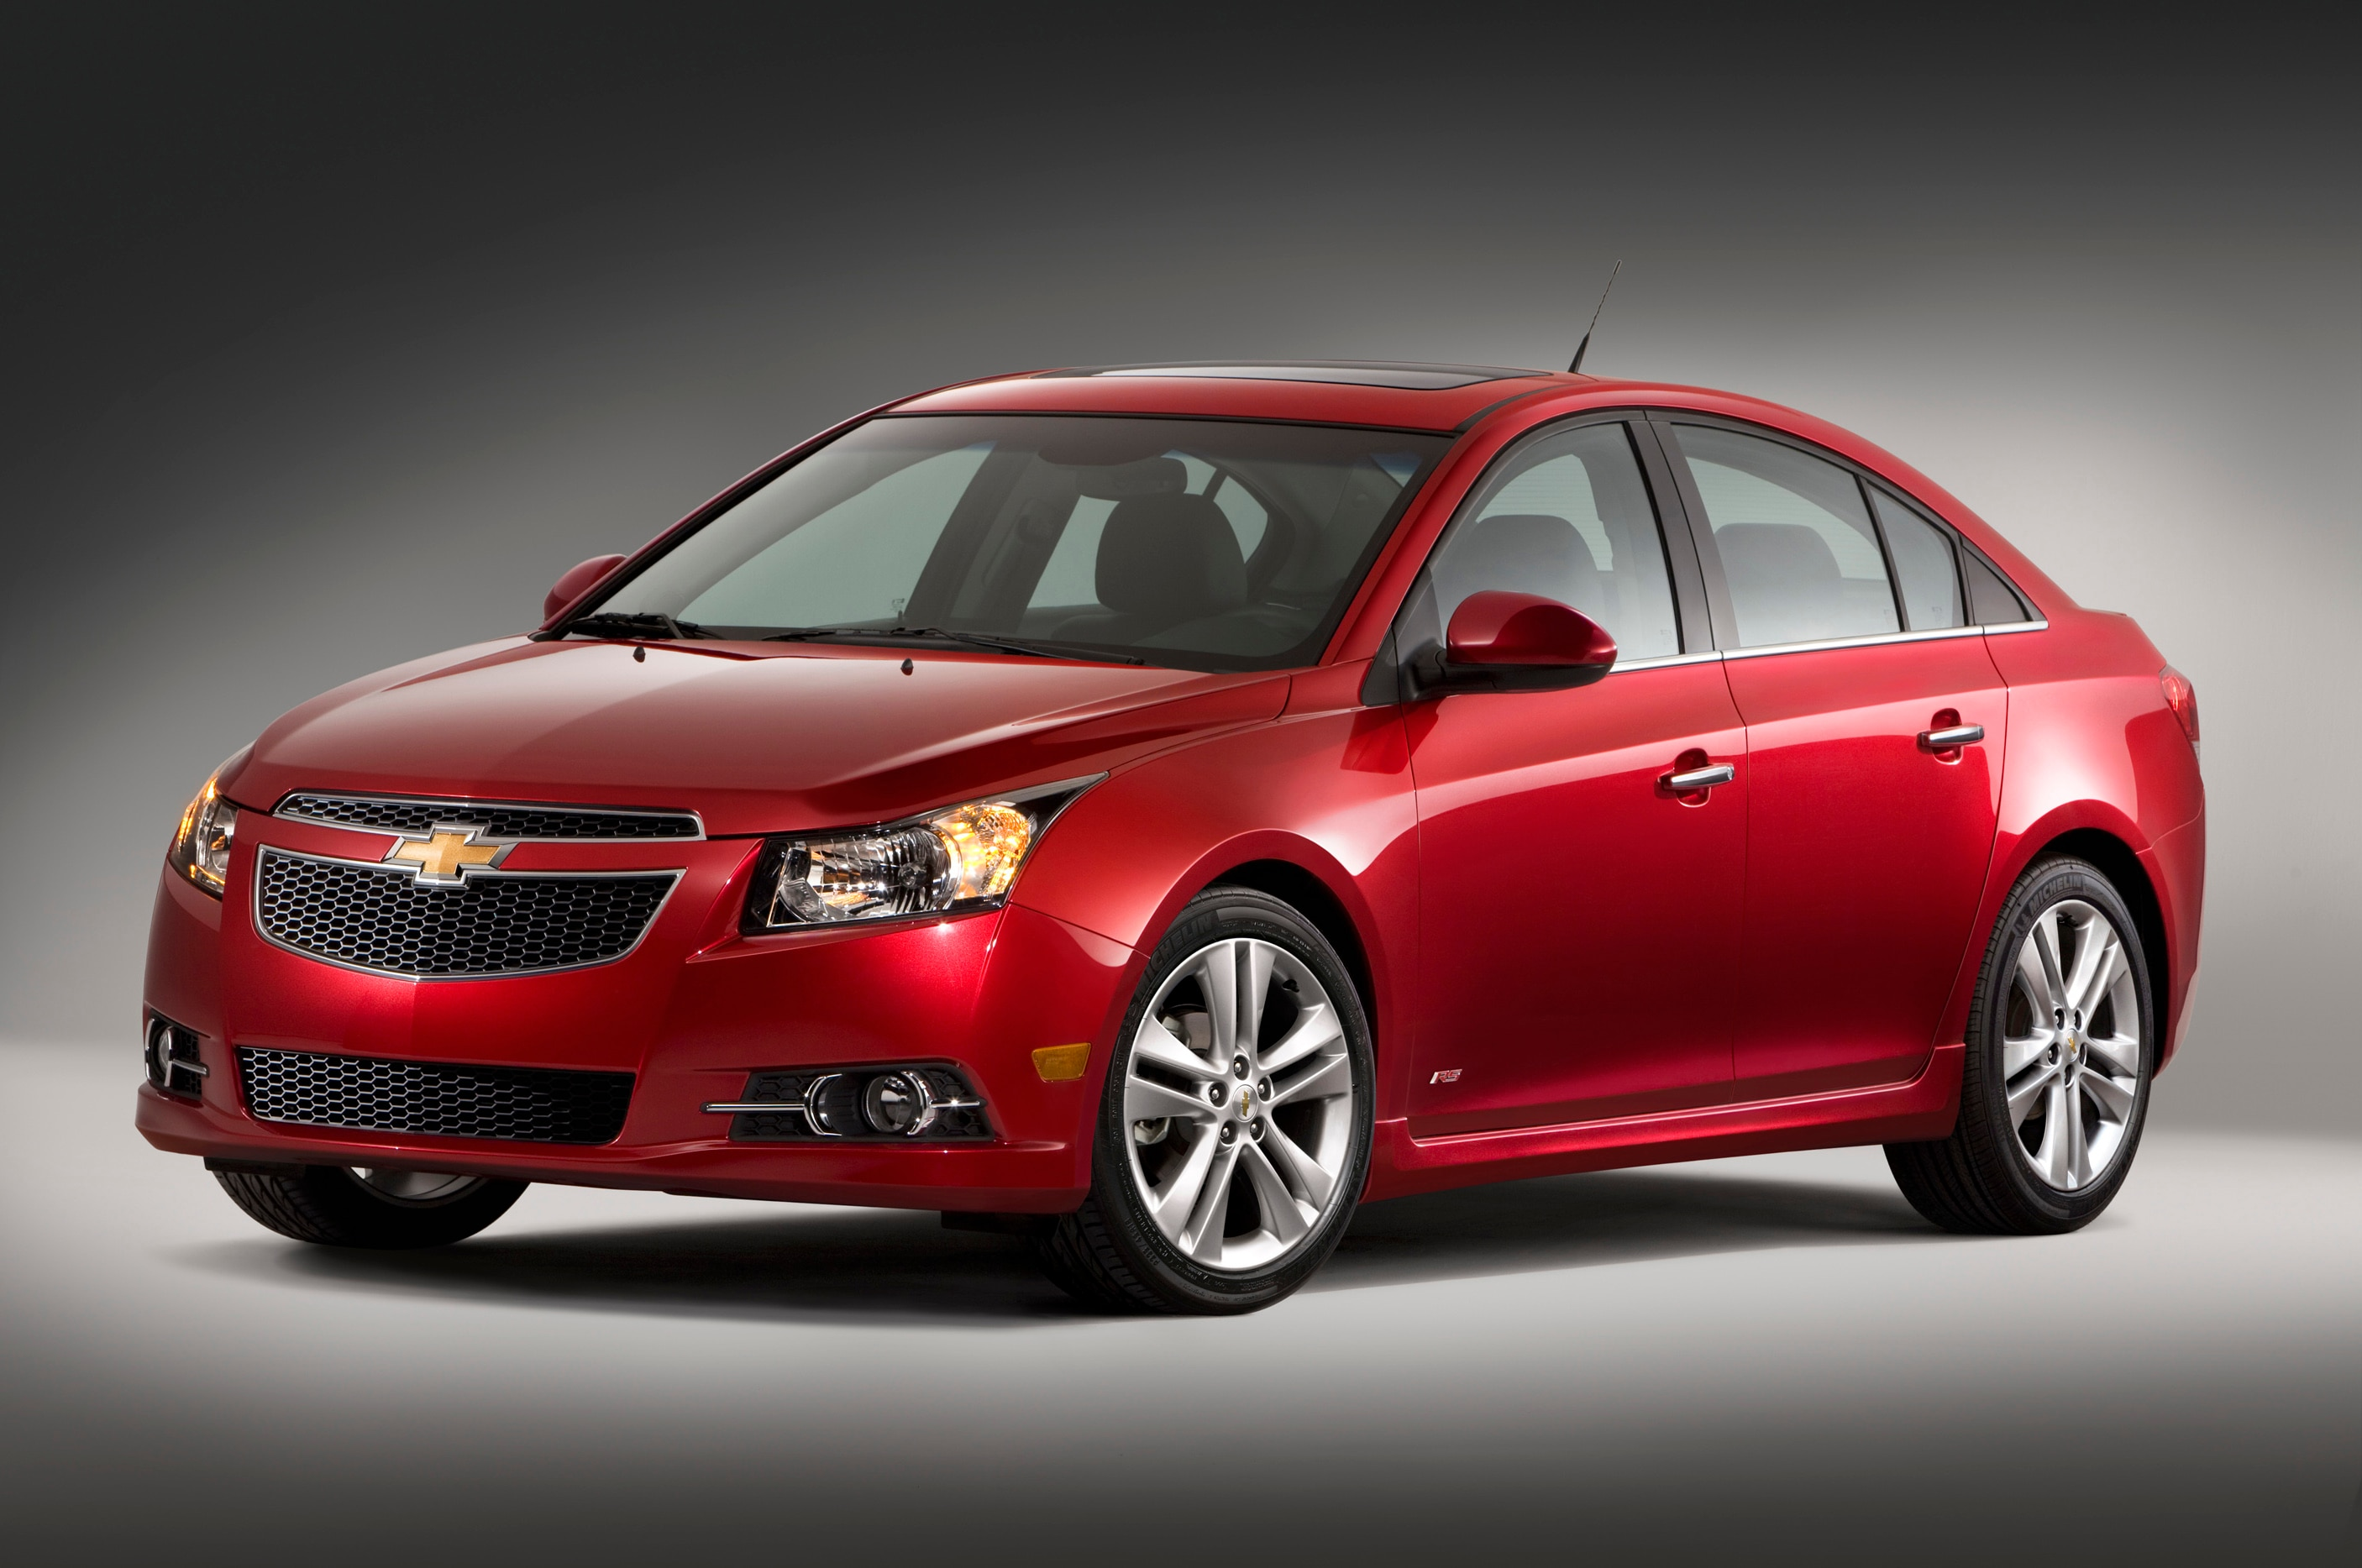 2013 Chevrolet Cruze Front Three Quarters1